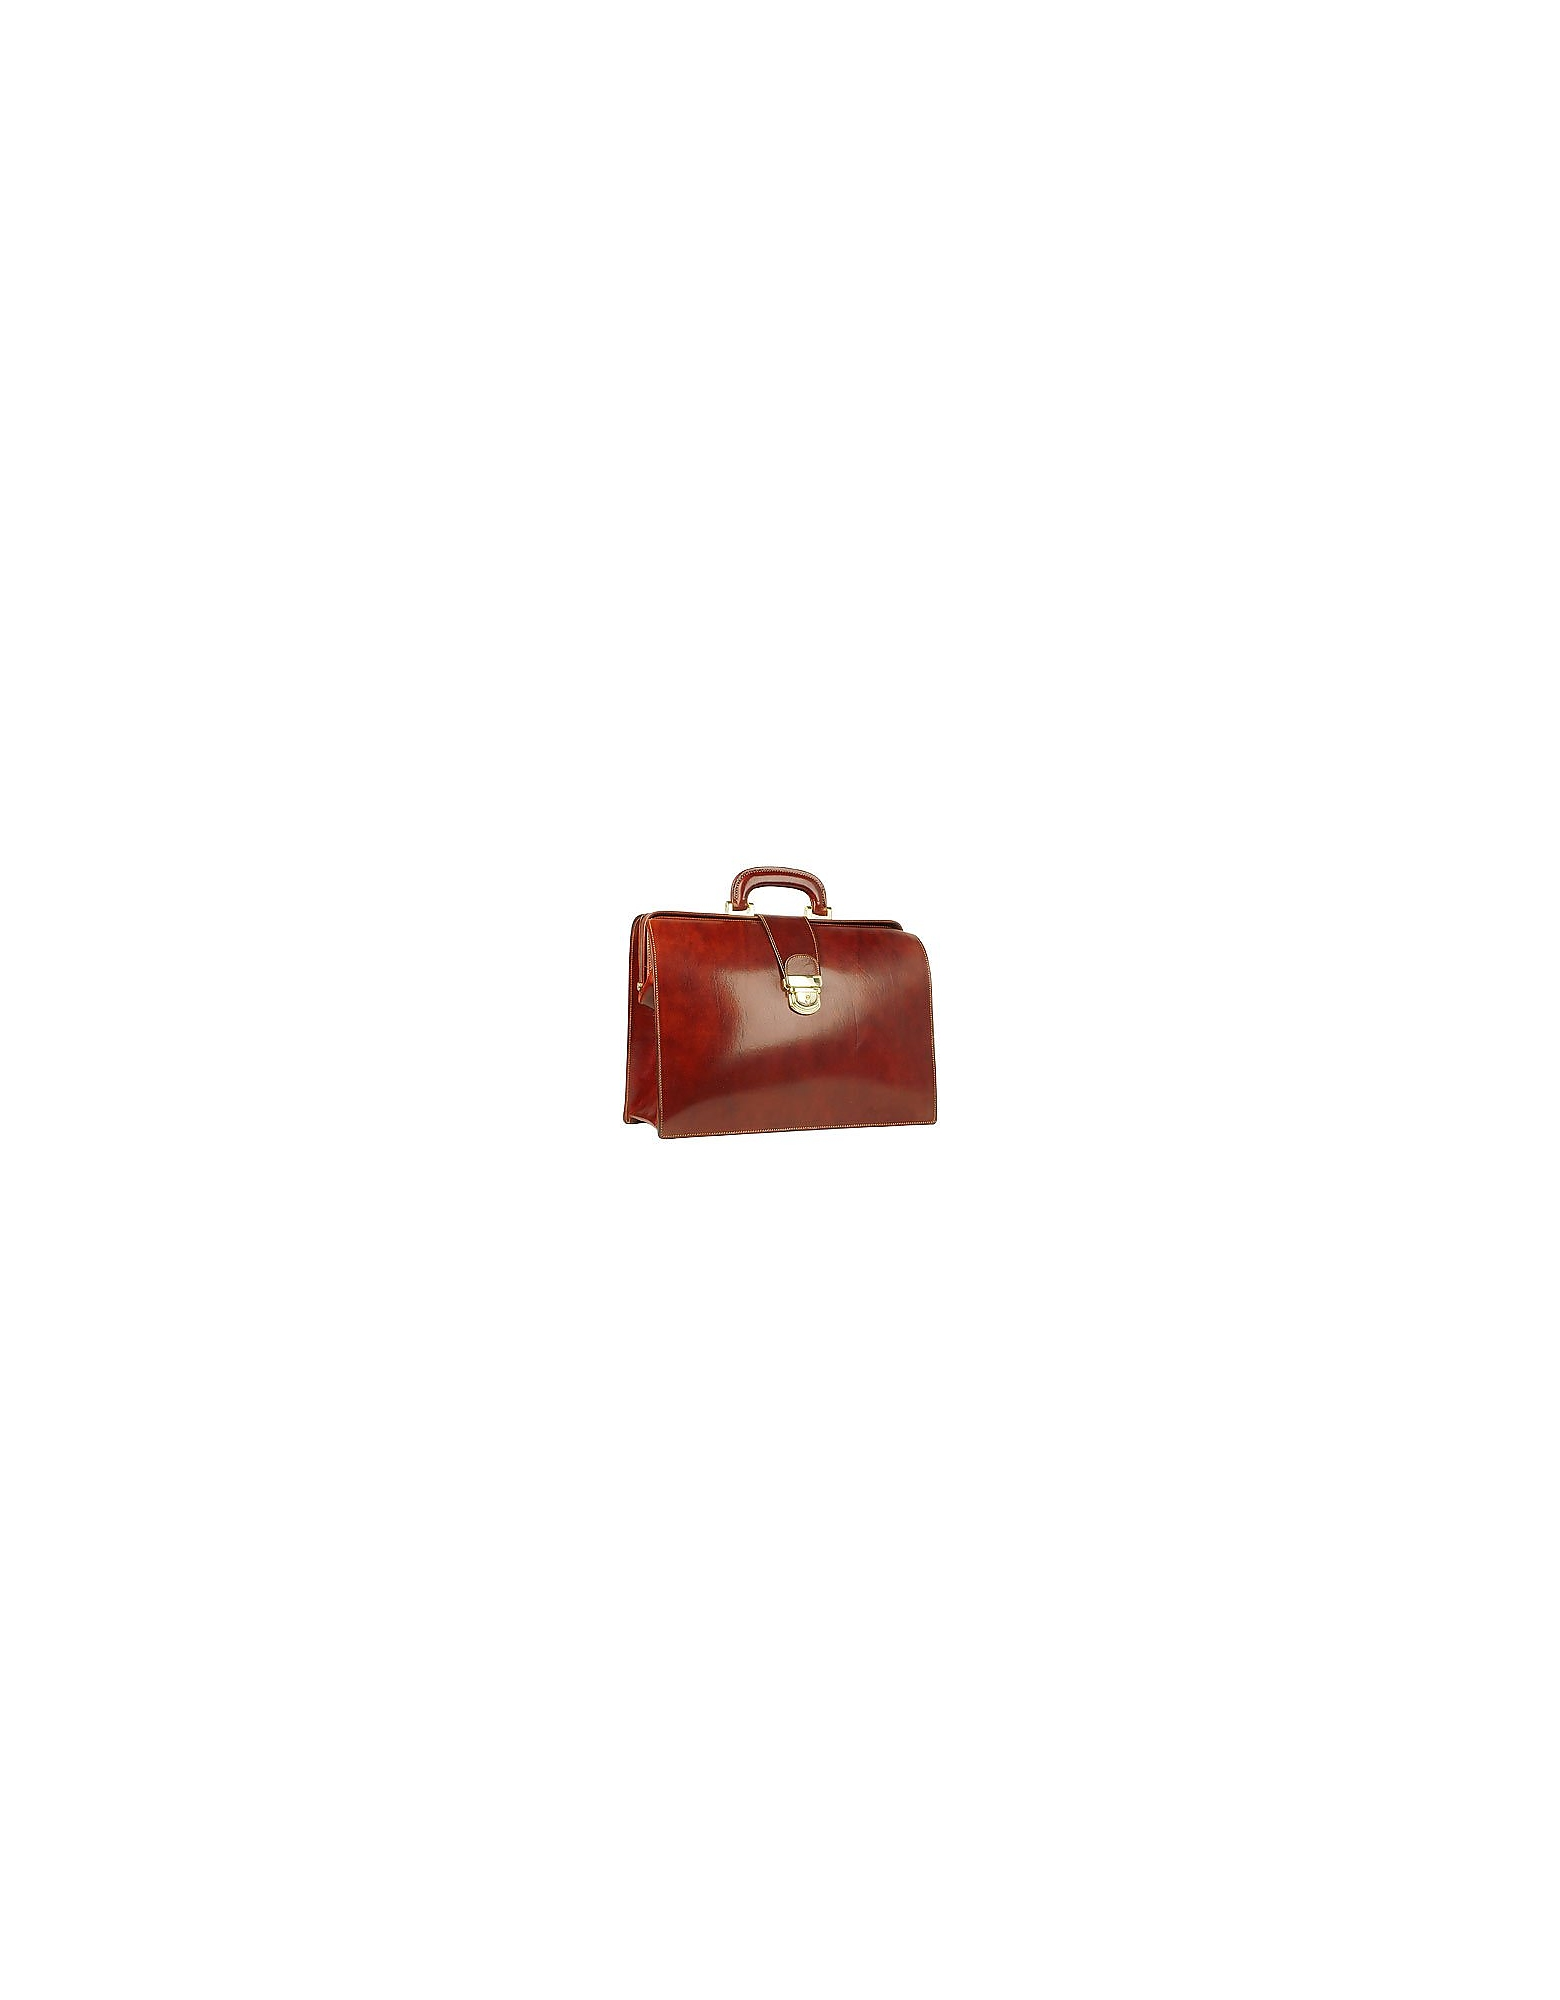 Forzieri Briefcases, Cognac Italian Leather Buckled Medium Doctor Bag